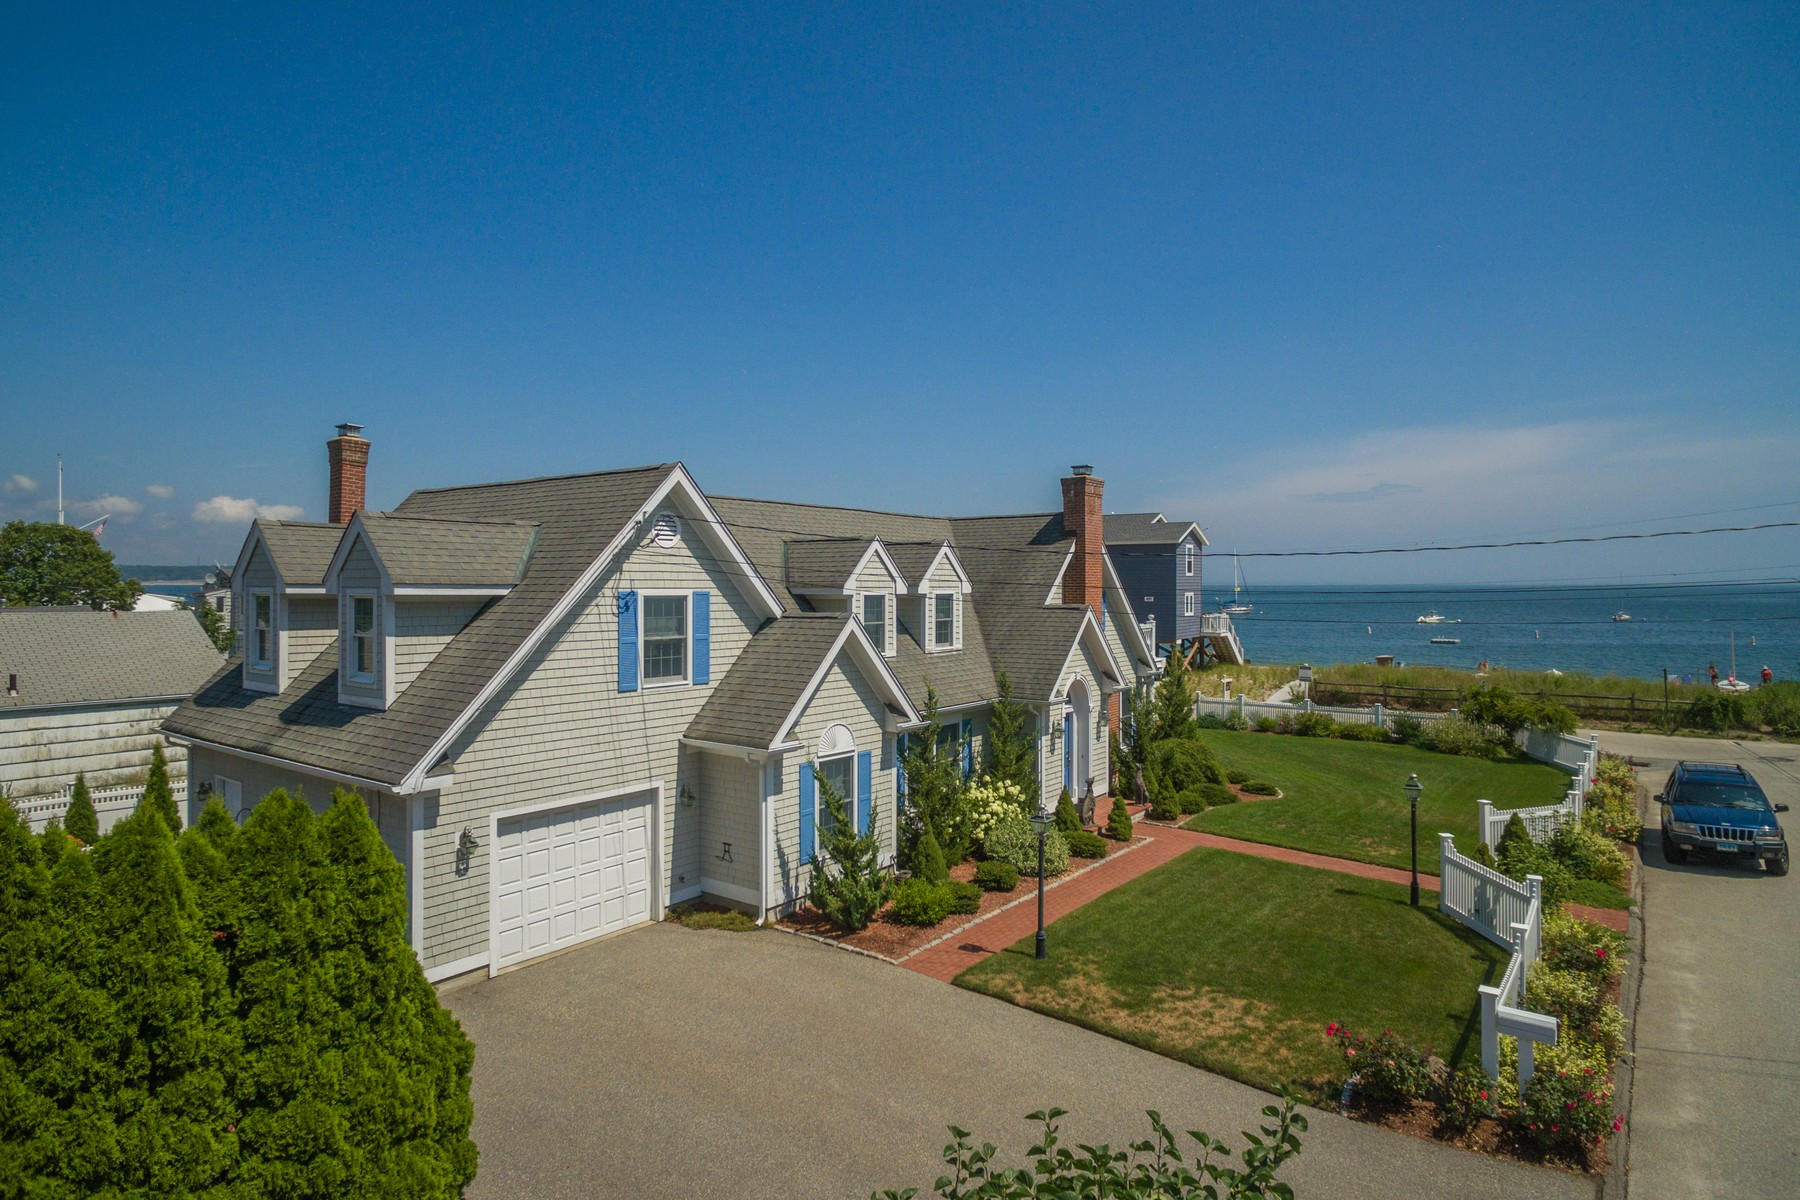 Casa Unifamiliar por un Venta en Indirect Waterfont - Classic Contempoary Cape 1 South Dr East Lyme, Connecticut, 06357 Estados Unidos